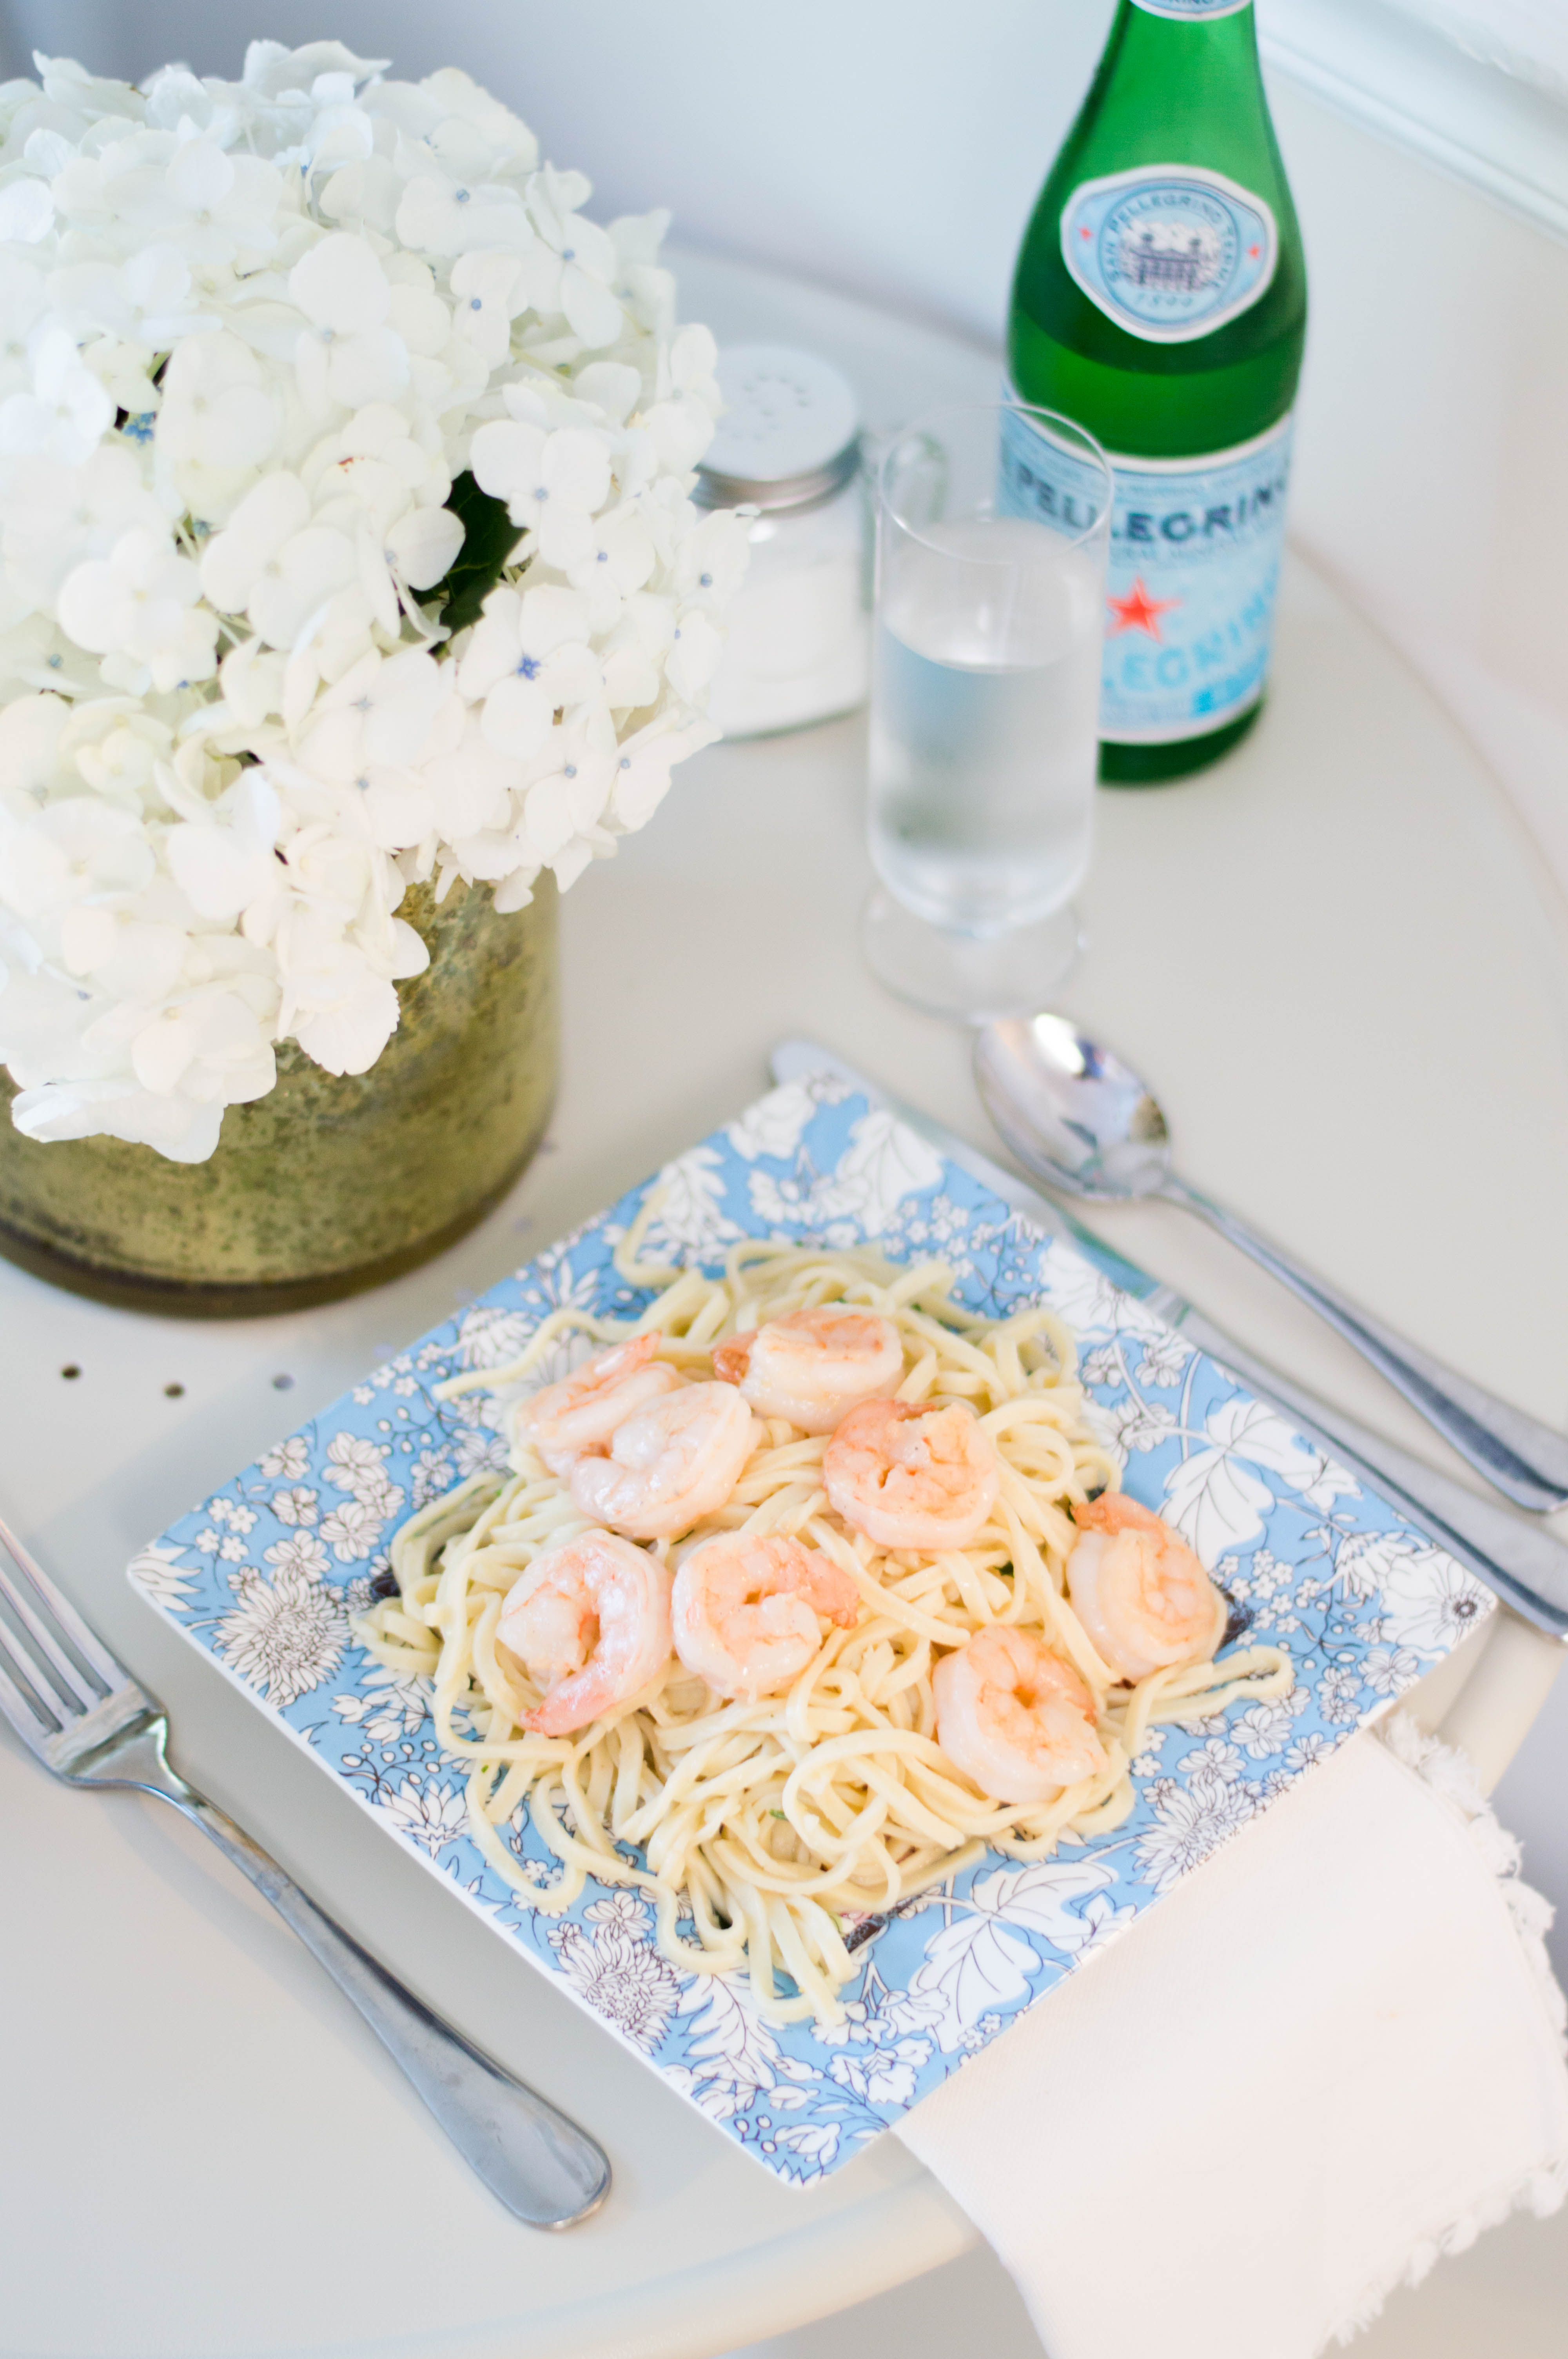 Dinner Thyme Review, Dinner Thyme, Cook at Home Meal Delivery Service, Home Meal Delivery Service